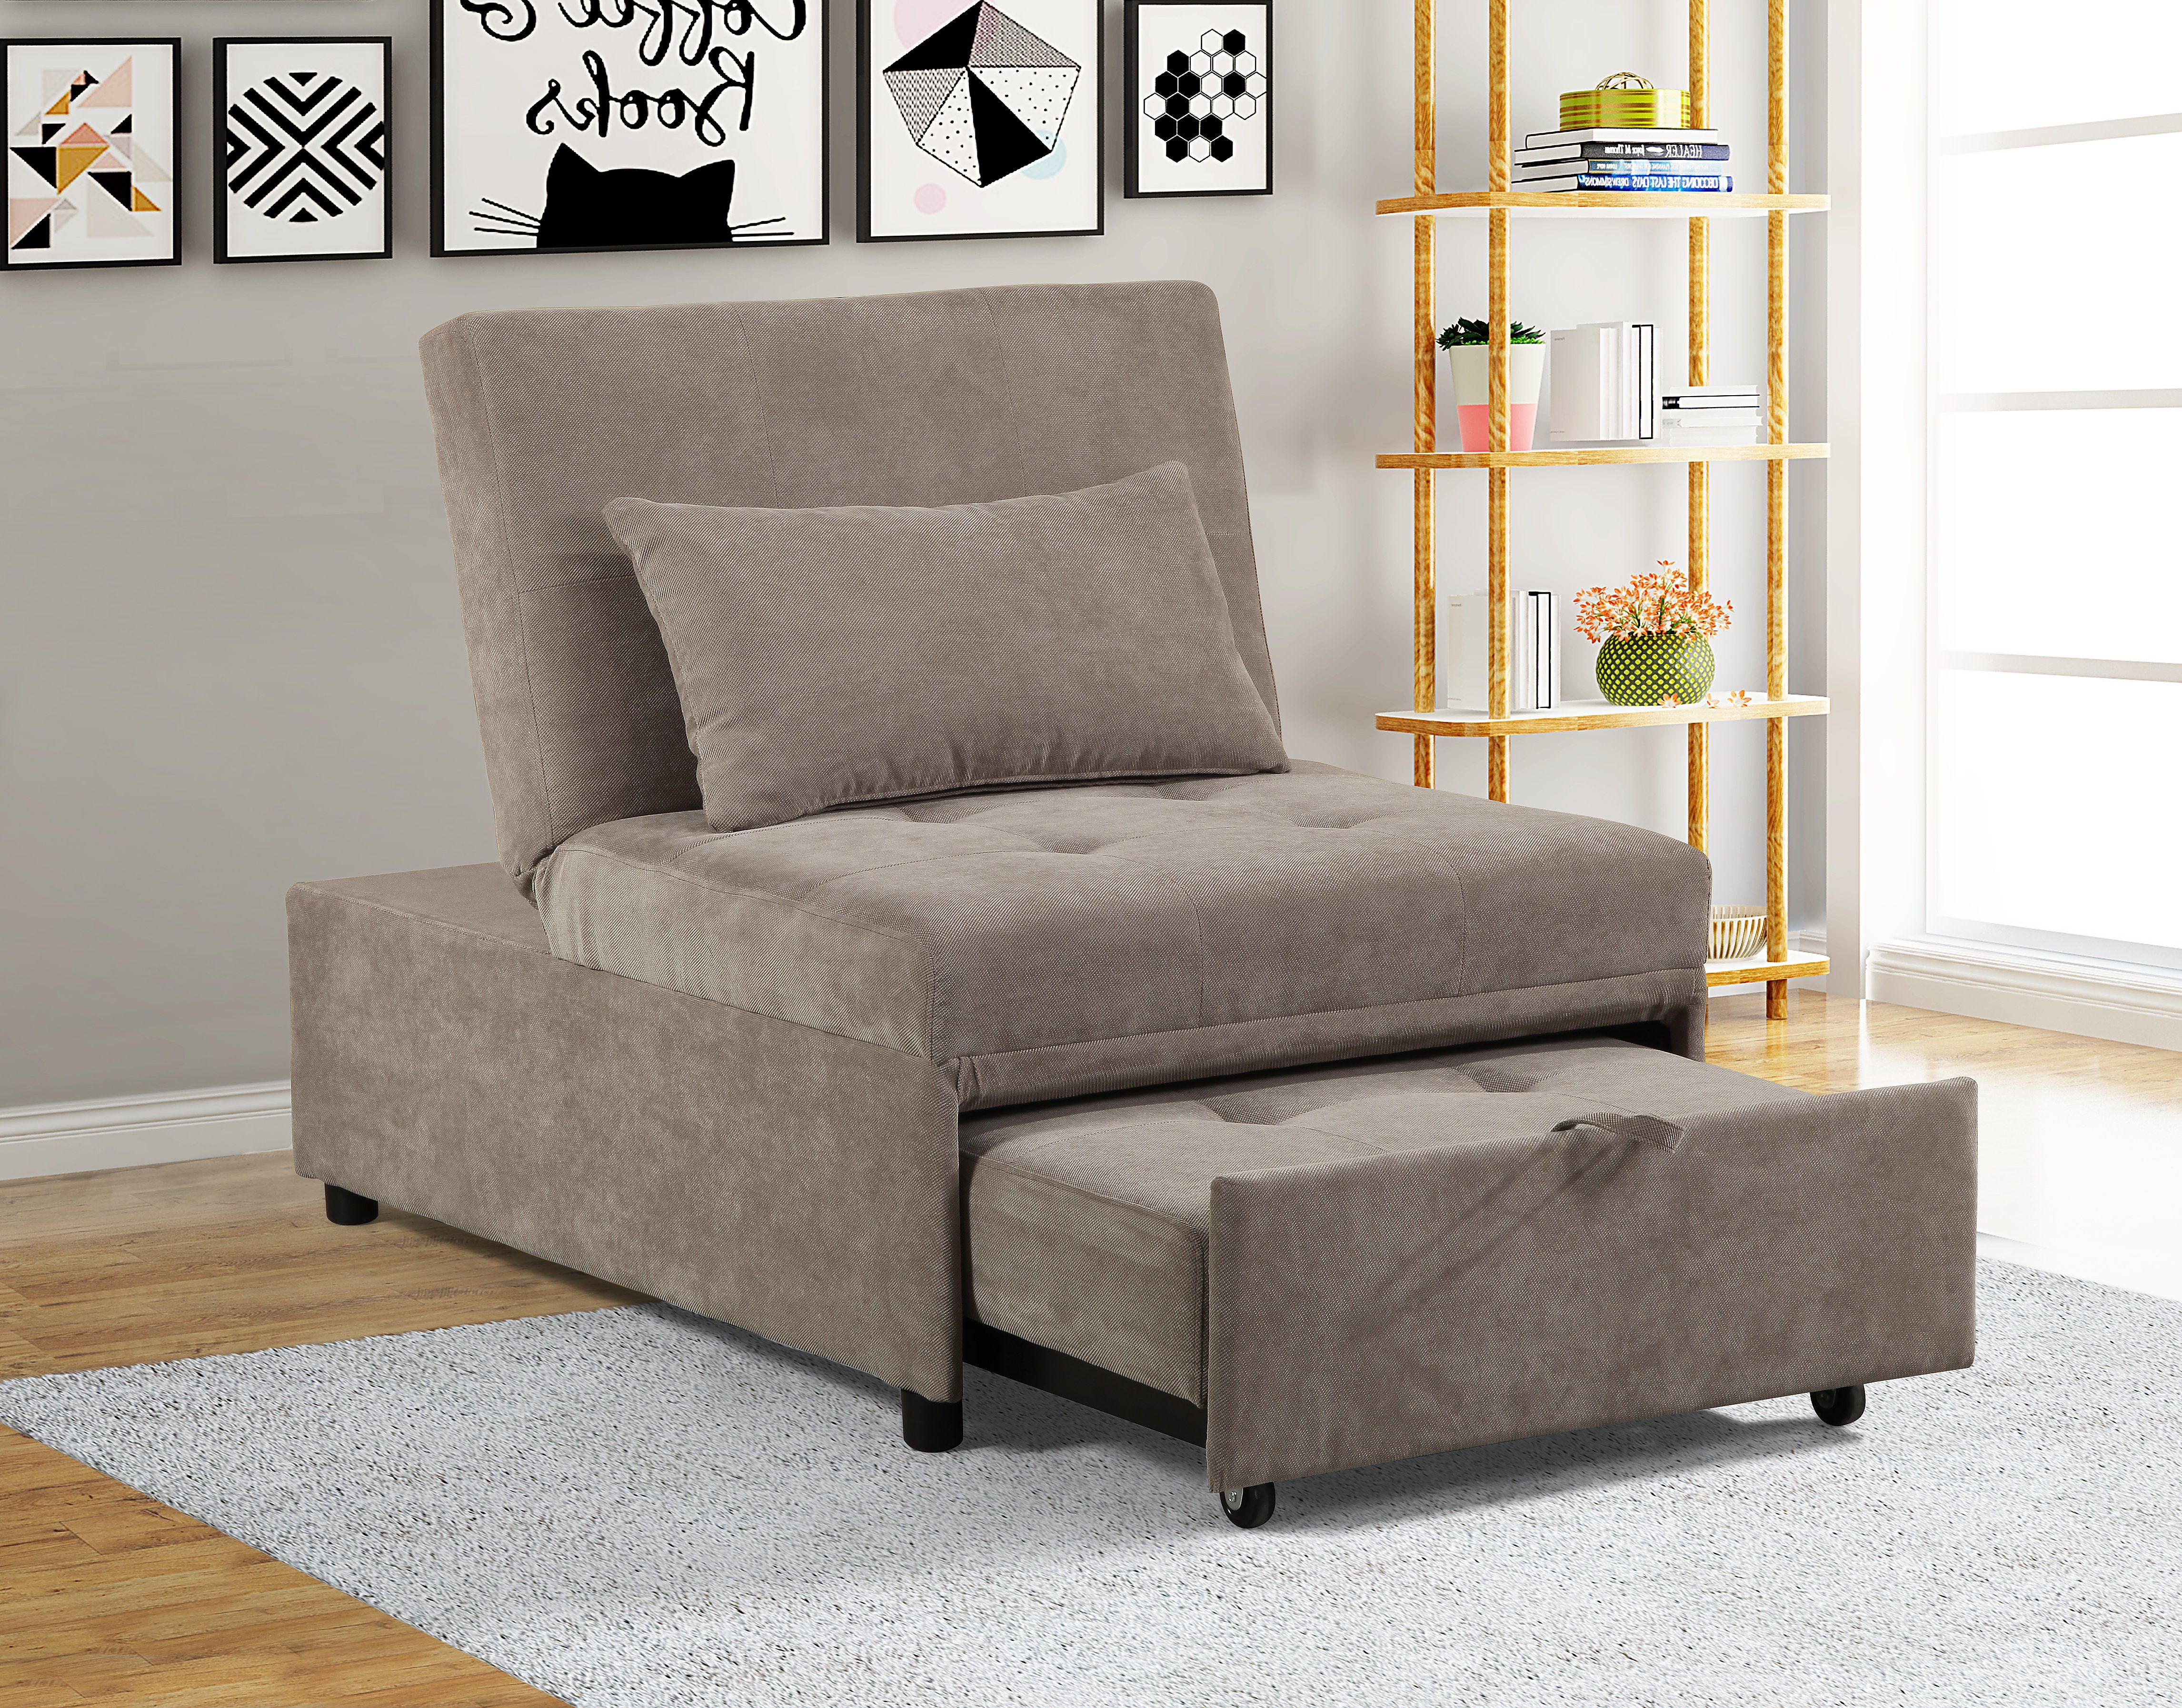 MiniMax Decor New Modern 2 in 1 Pullout Sofa Living room